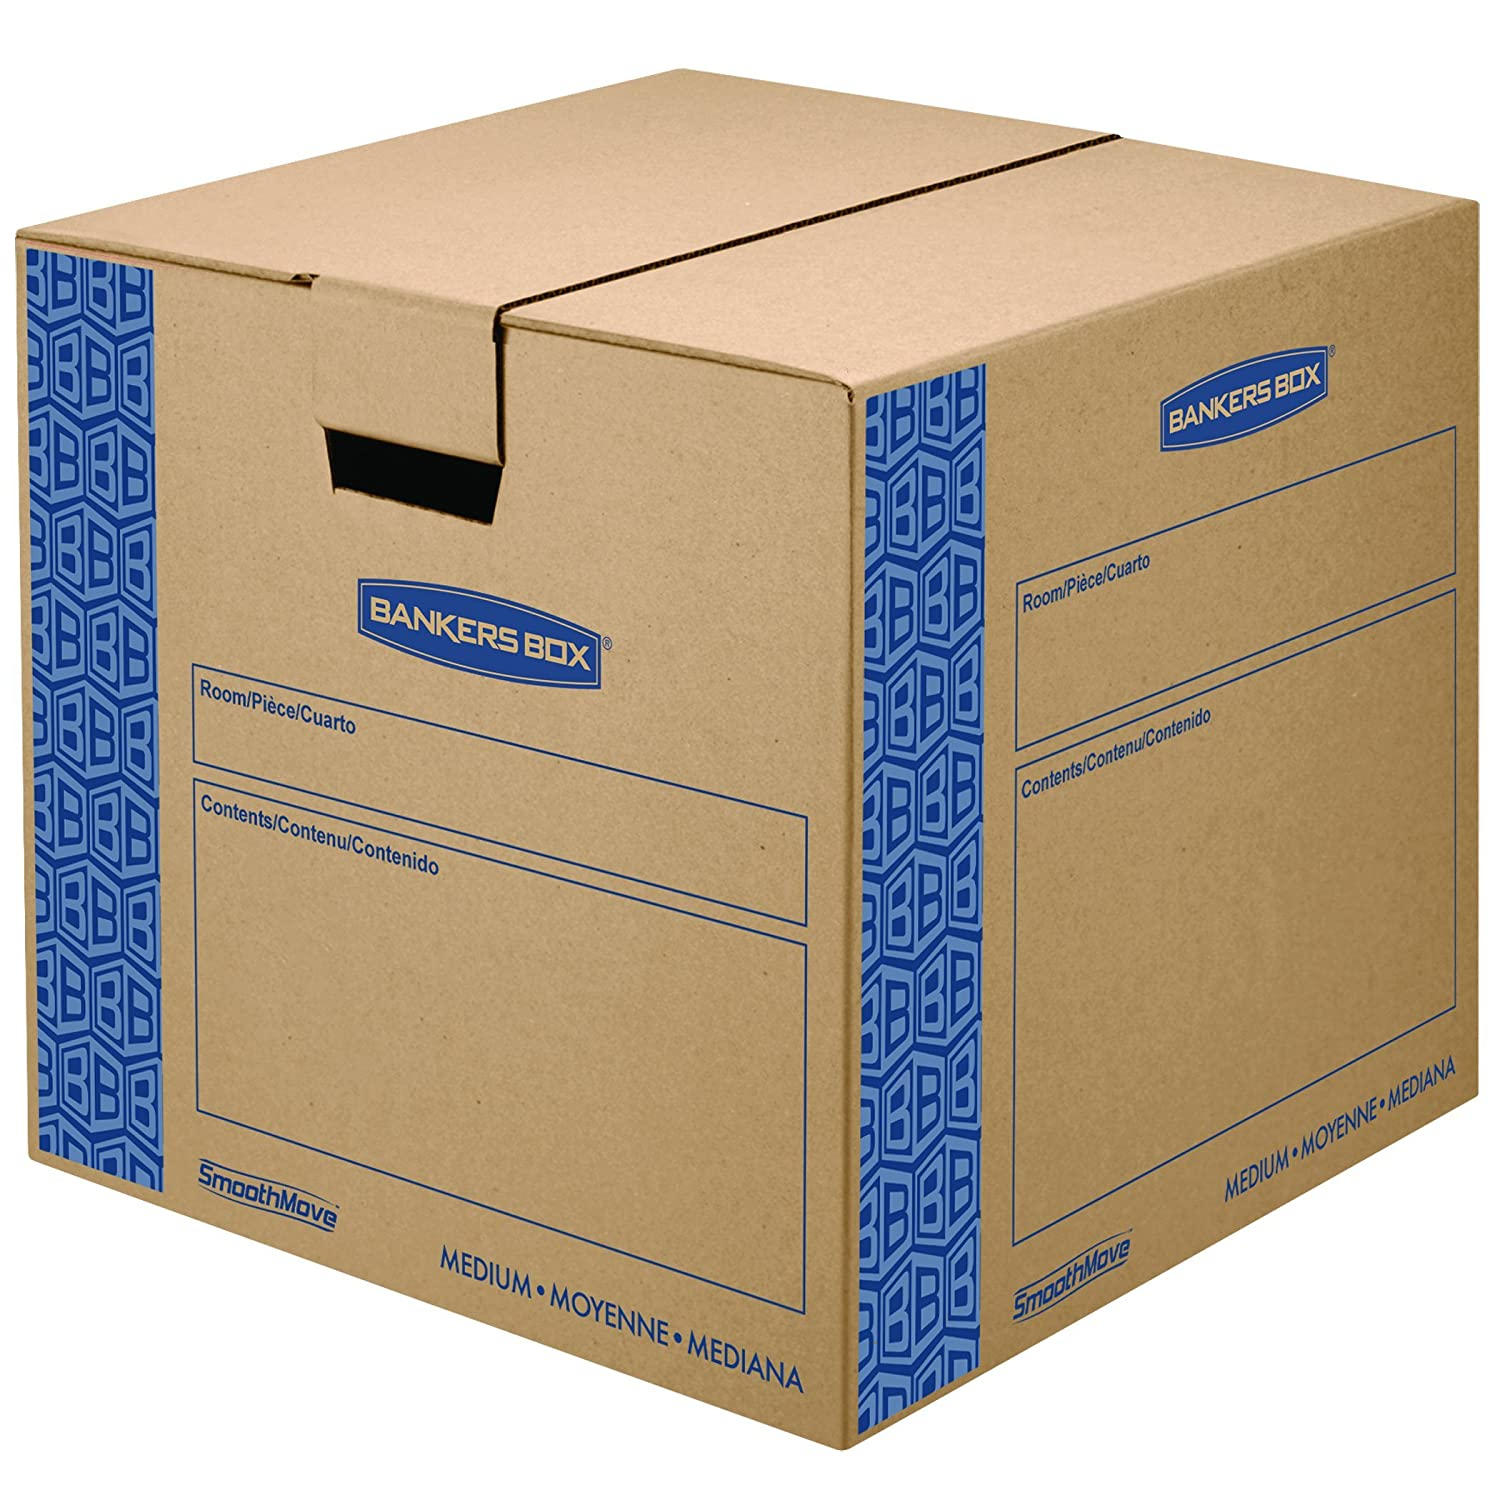 Amazon.com: Shipping & Moving Supplies: Office Products